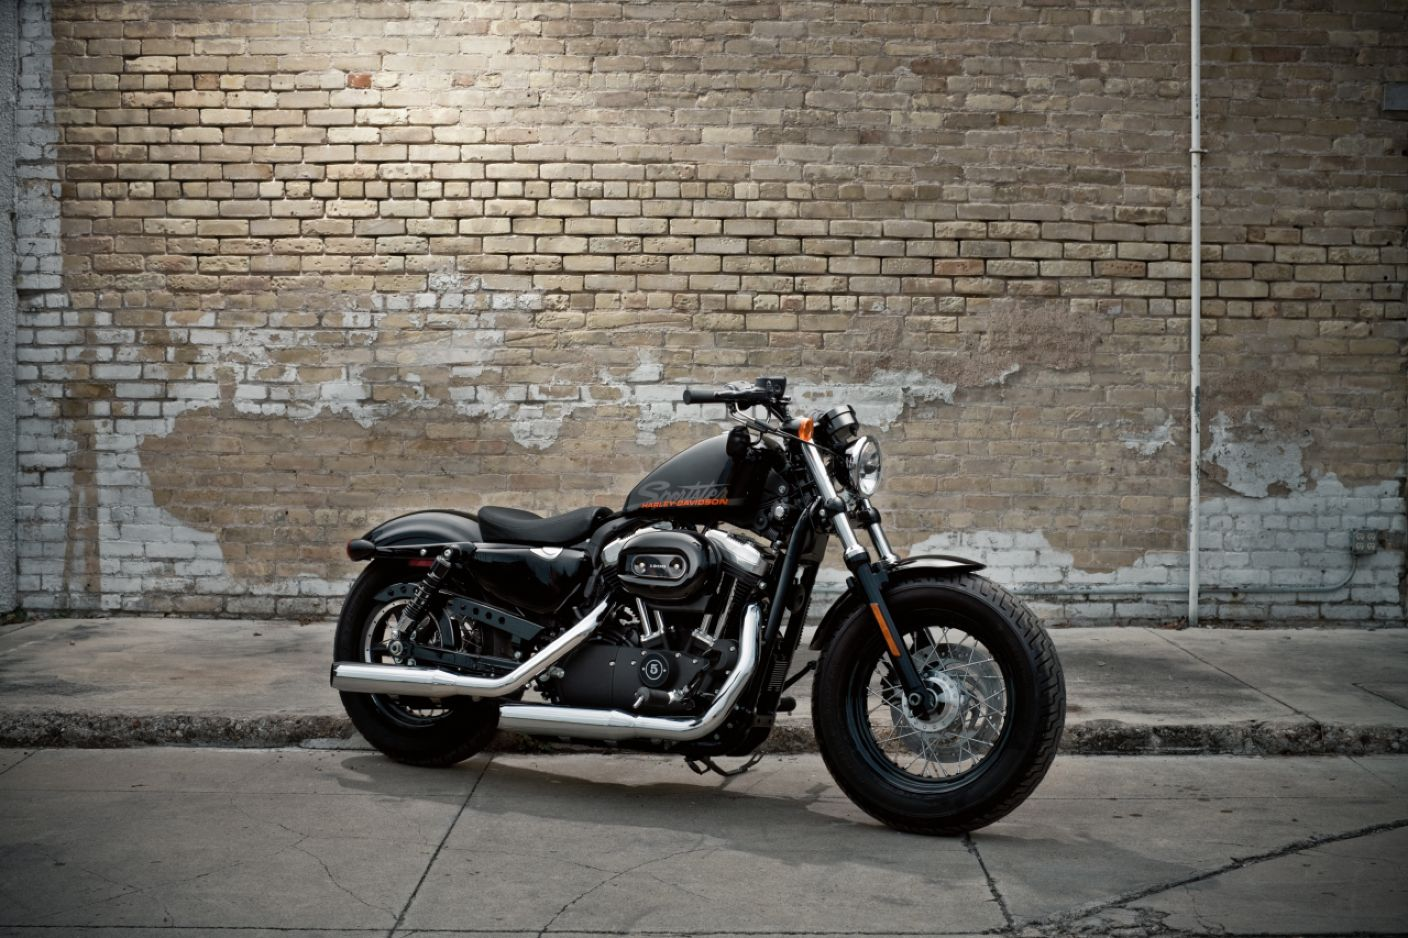 Download free HD Harley Davidson Sportster 48 Picture, image